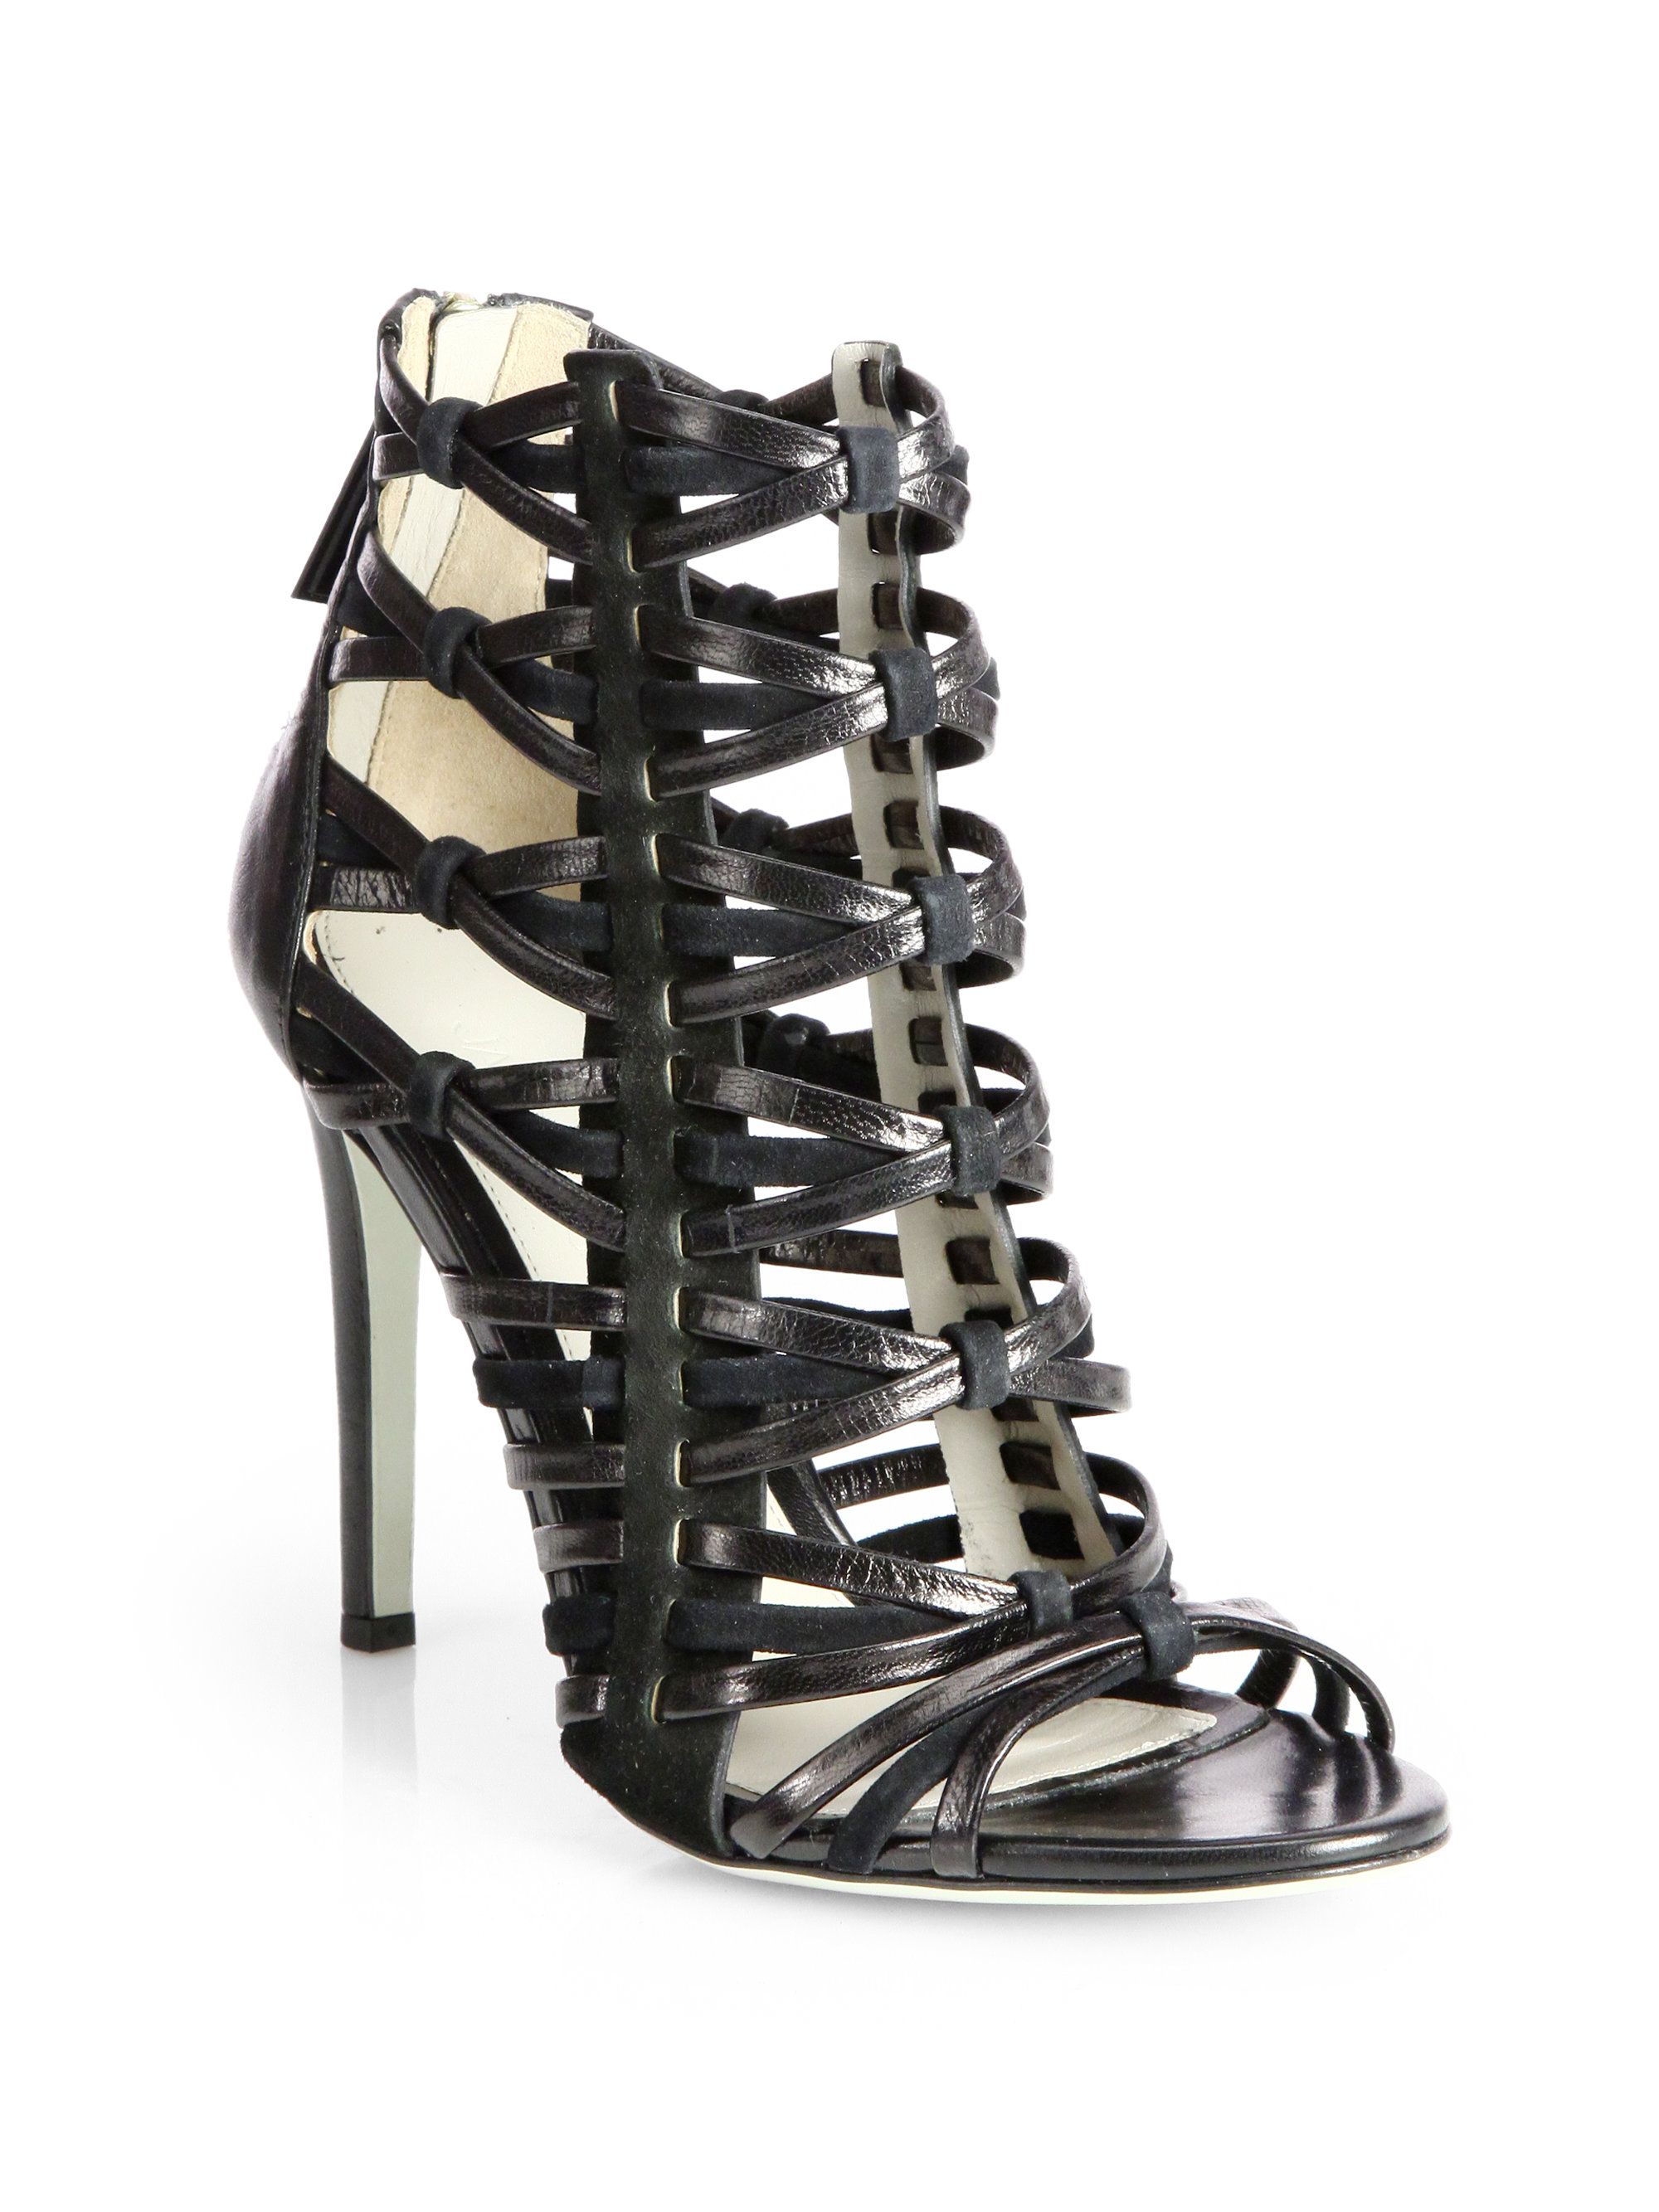 Jason wu Leather Suede Strappy Sandals in Black | Lyst